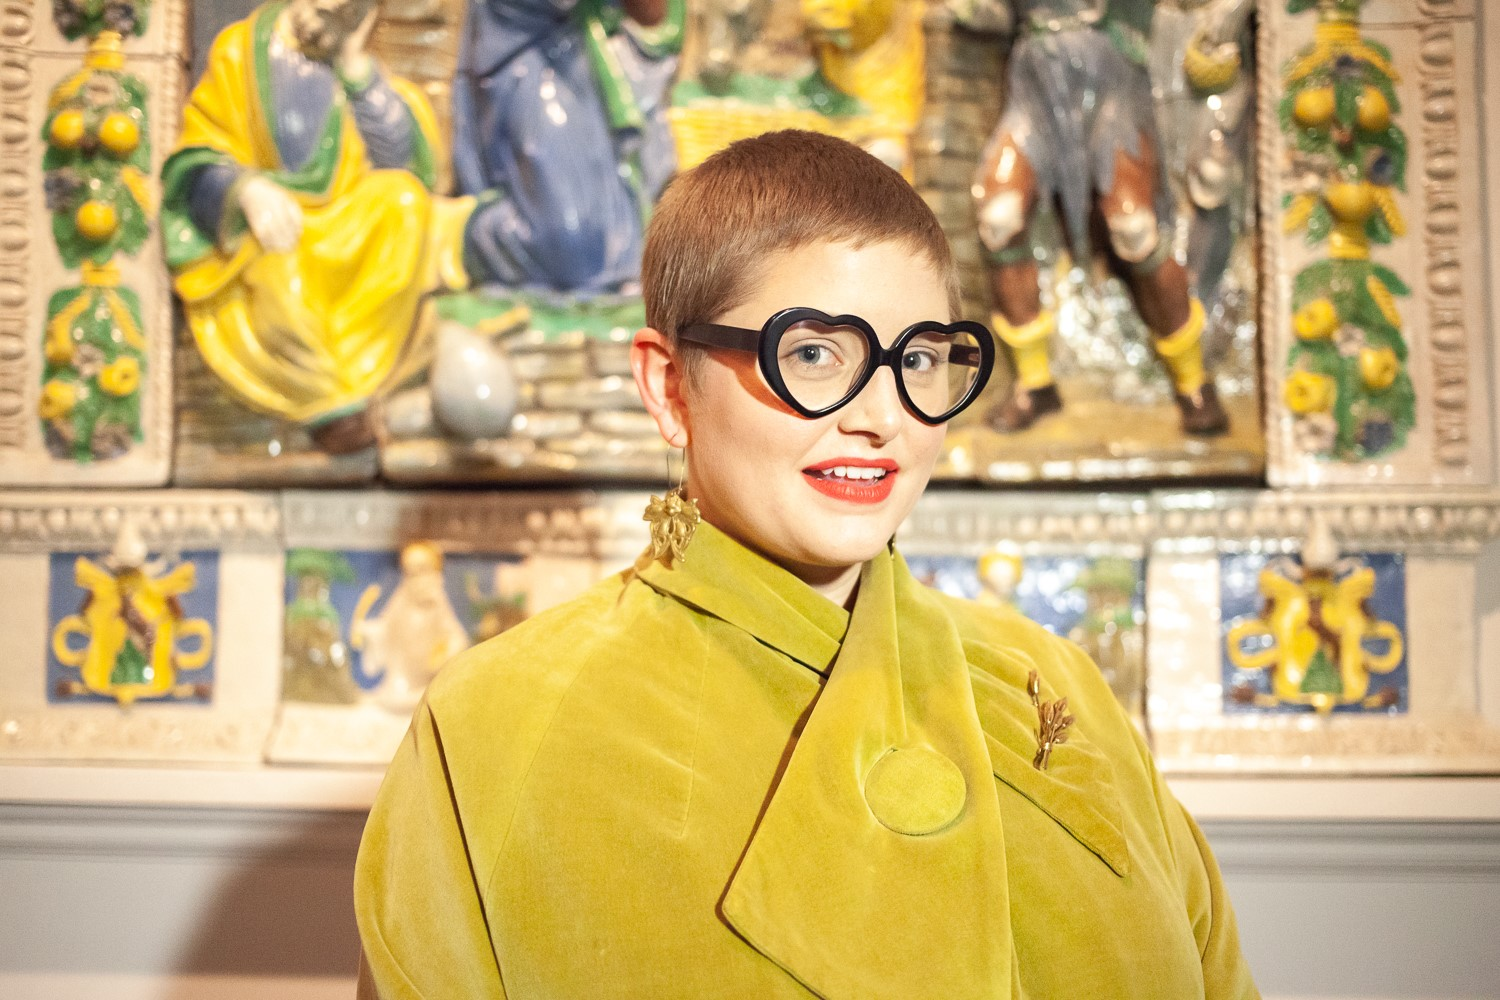 Woman in yellow coat and black heart-shaped glasses standing in front of artwork